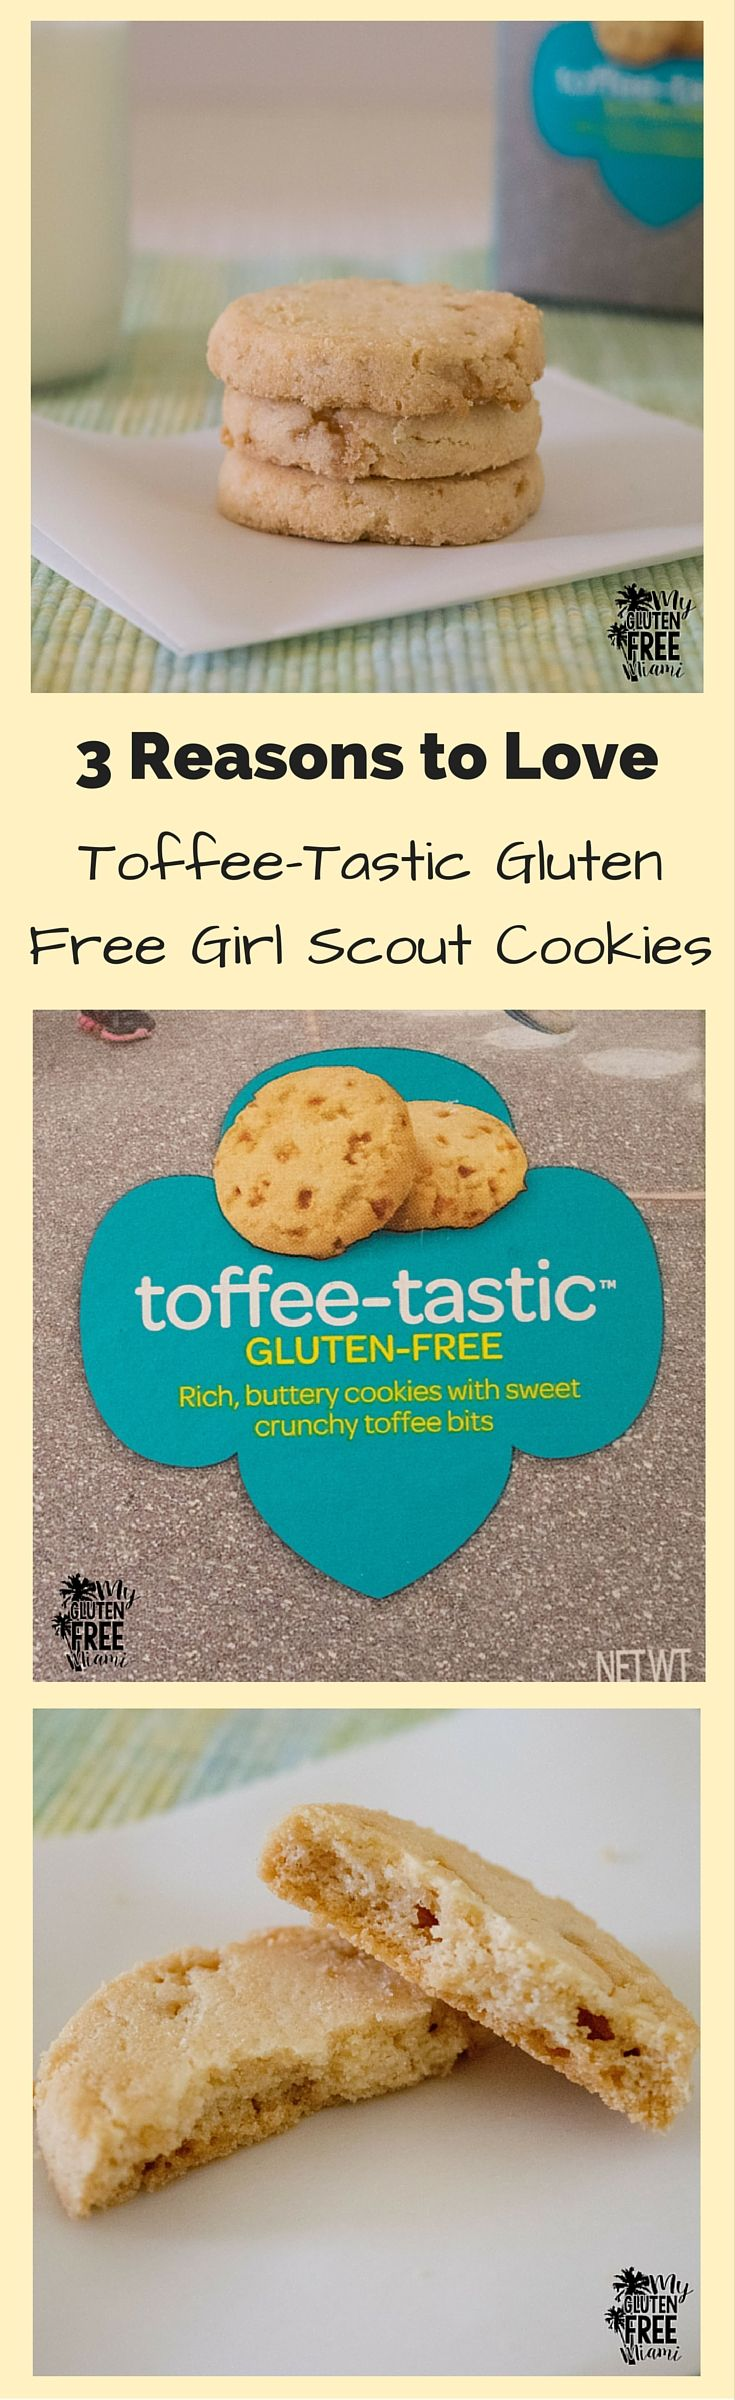 A review of the yummy Toffee-Tastic Gluten Free Girl Scout Cookies. These can be hard to find, but they are worth it! Read our review and then talk to your local Girl Scout troop to see if they have them :)